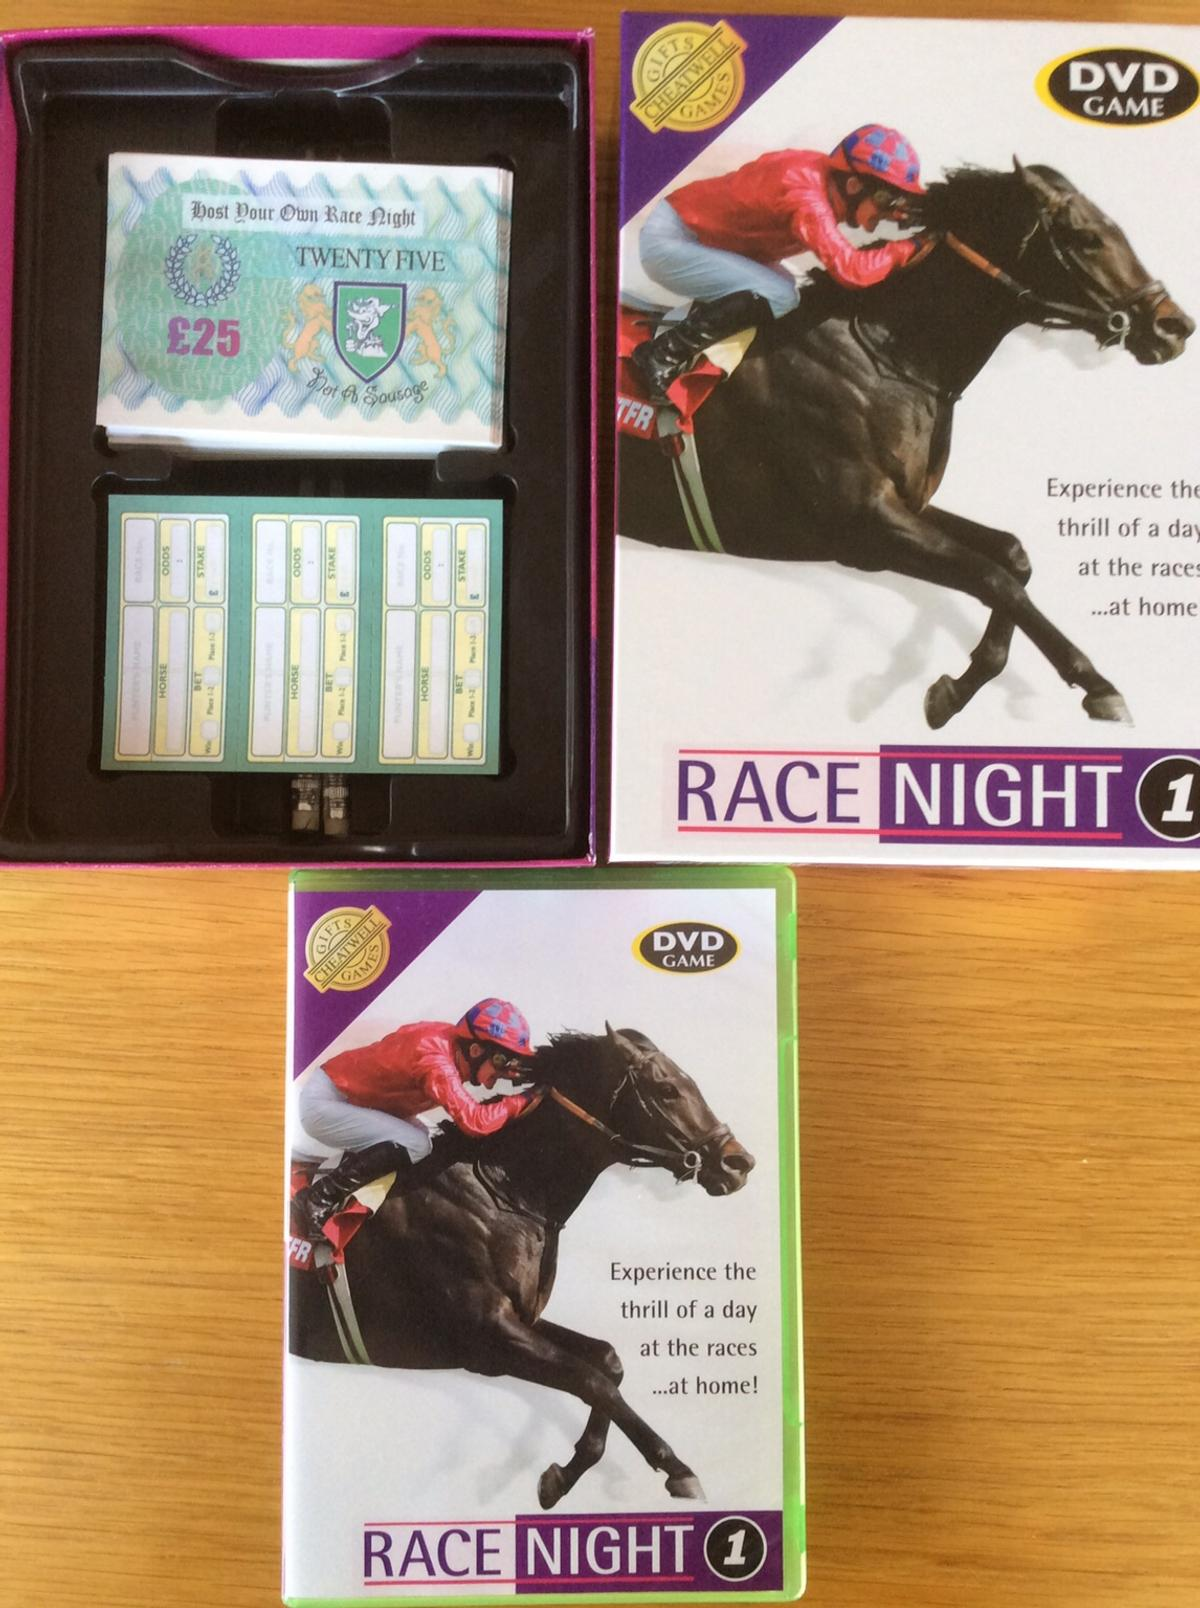 Betting slips for a race night game what website do people bet on sports